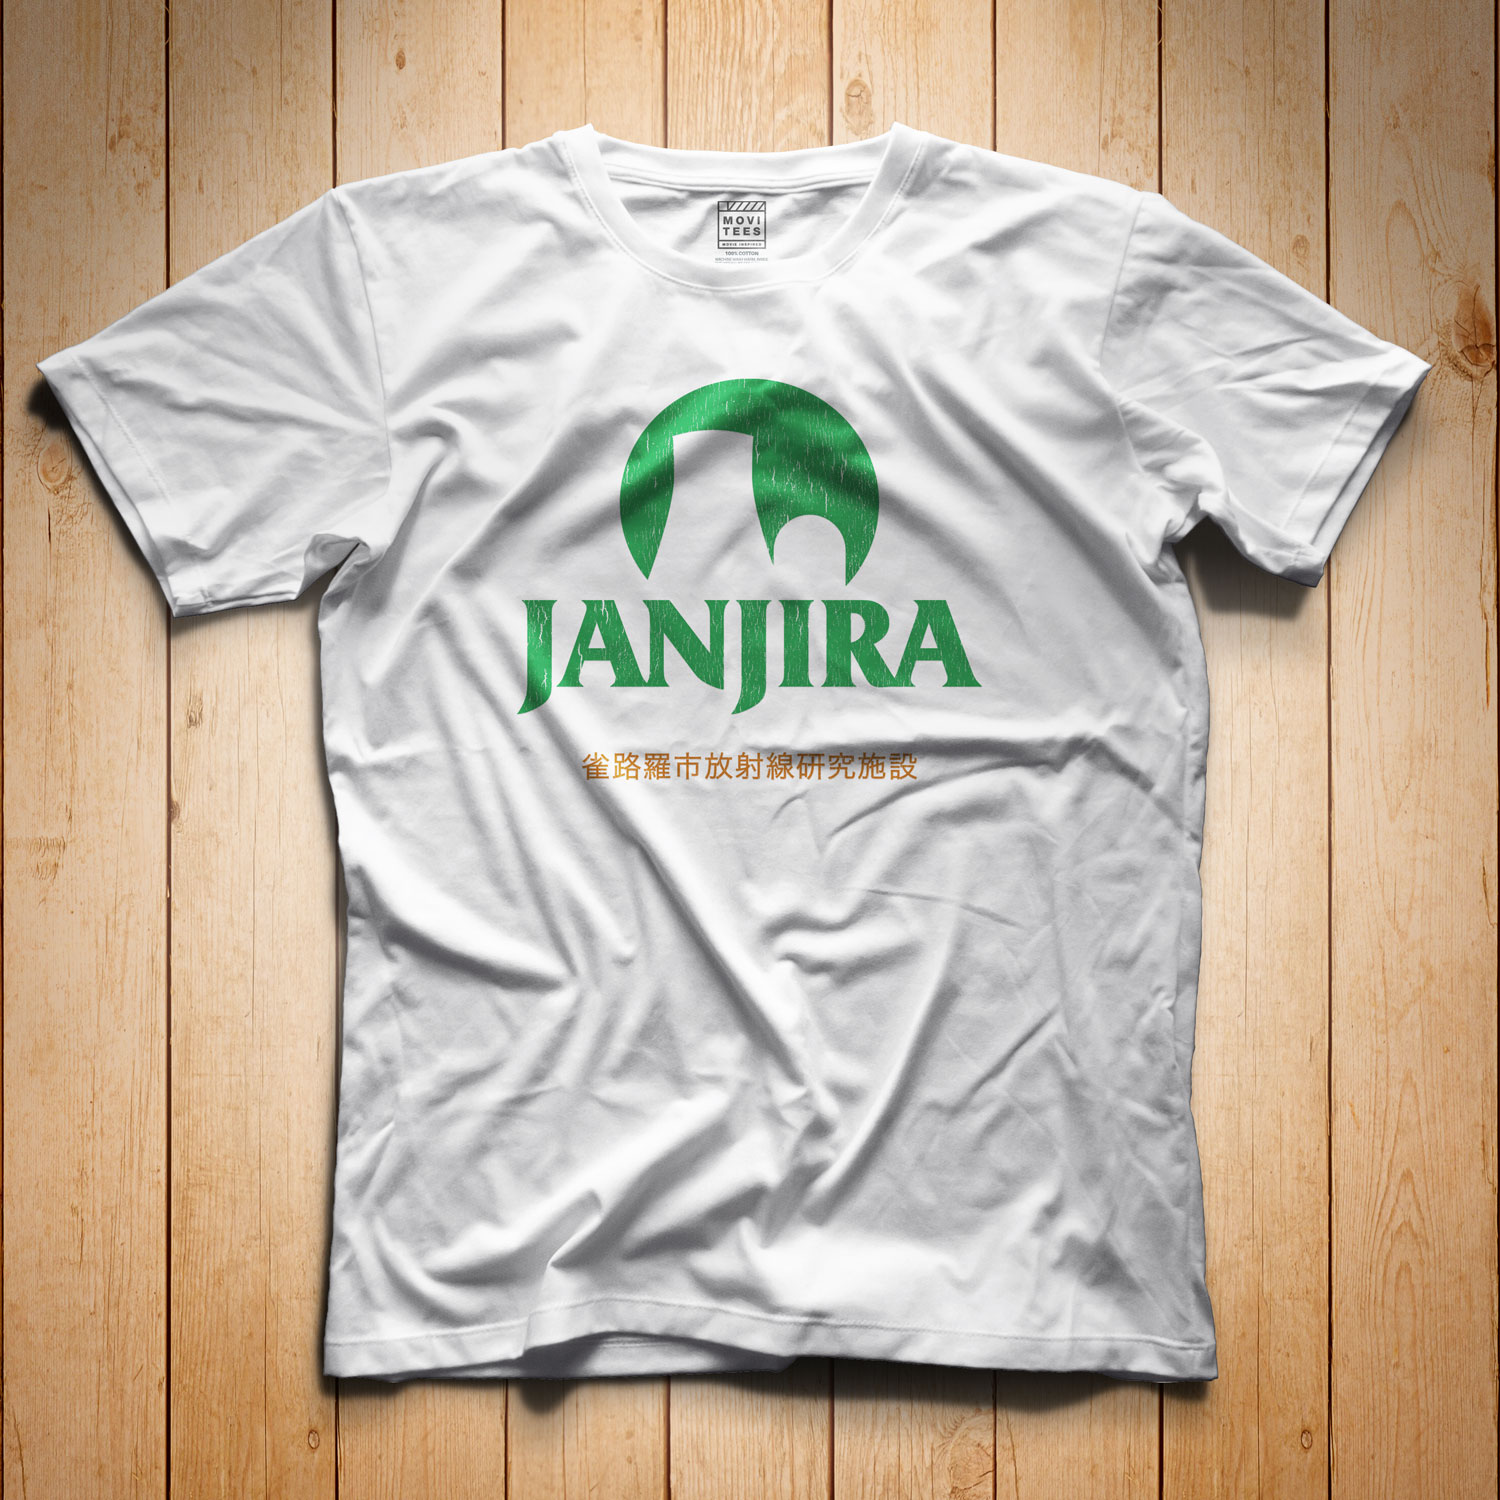 Janjira-Godzilla-Inspired-TShirt-by-MoviTees_W.jpg